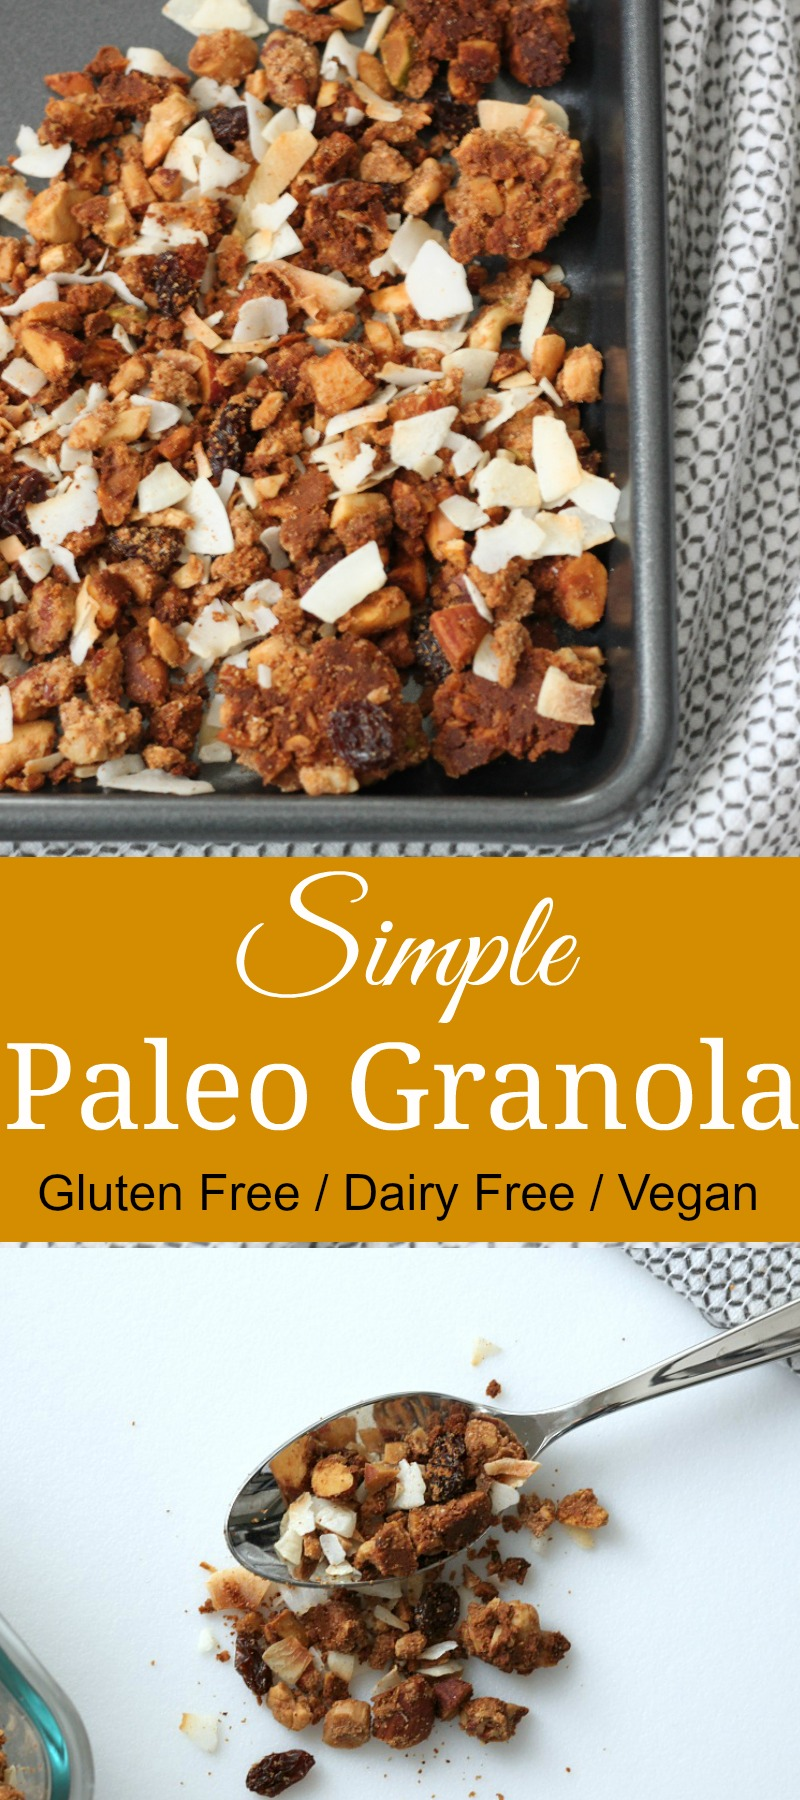 This simple paleo granola recipe is easy to make and will have you reaching for seconds. And thirds, it's so good. #paleo #granola